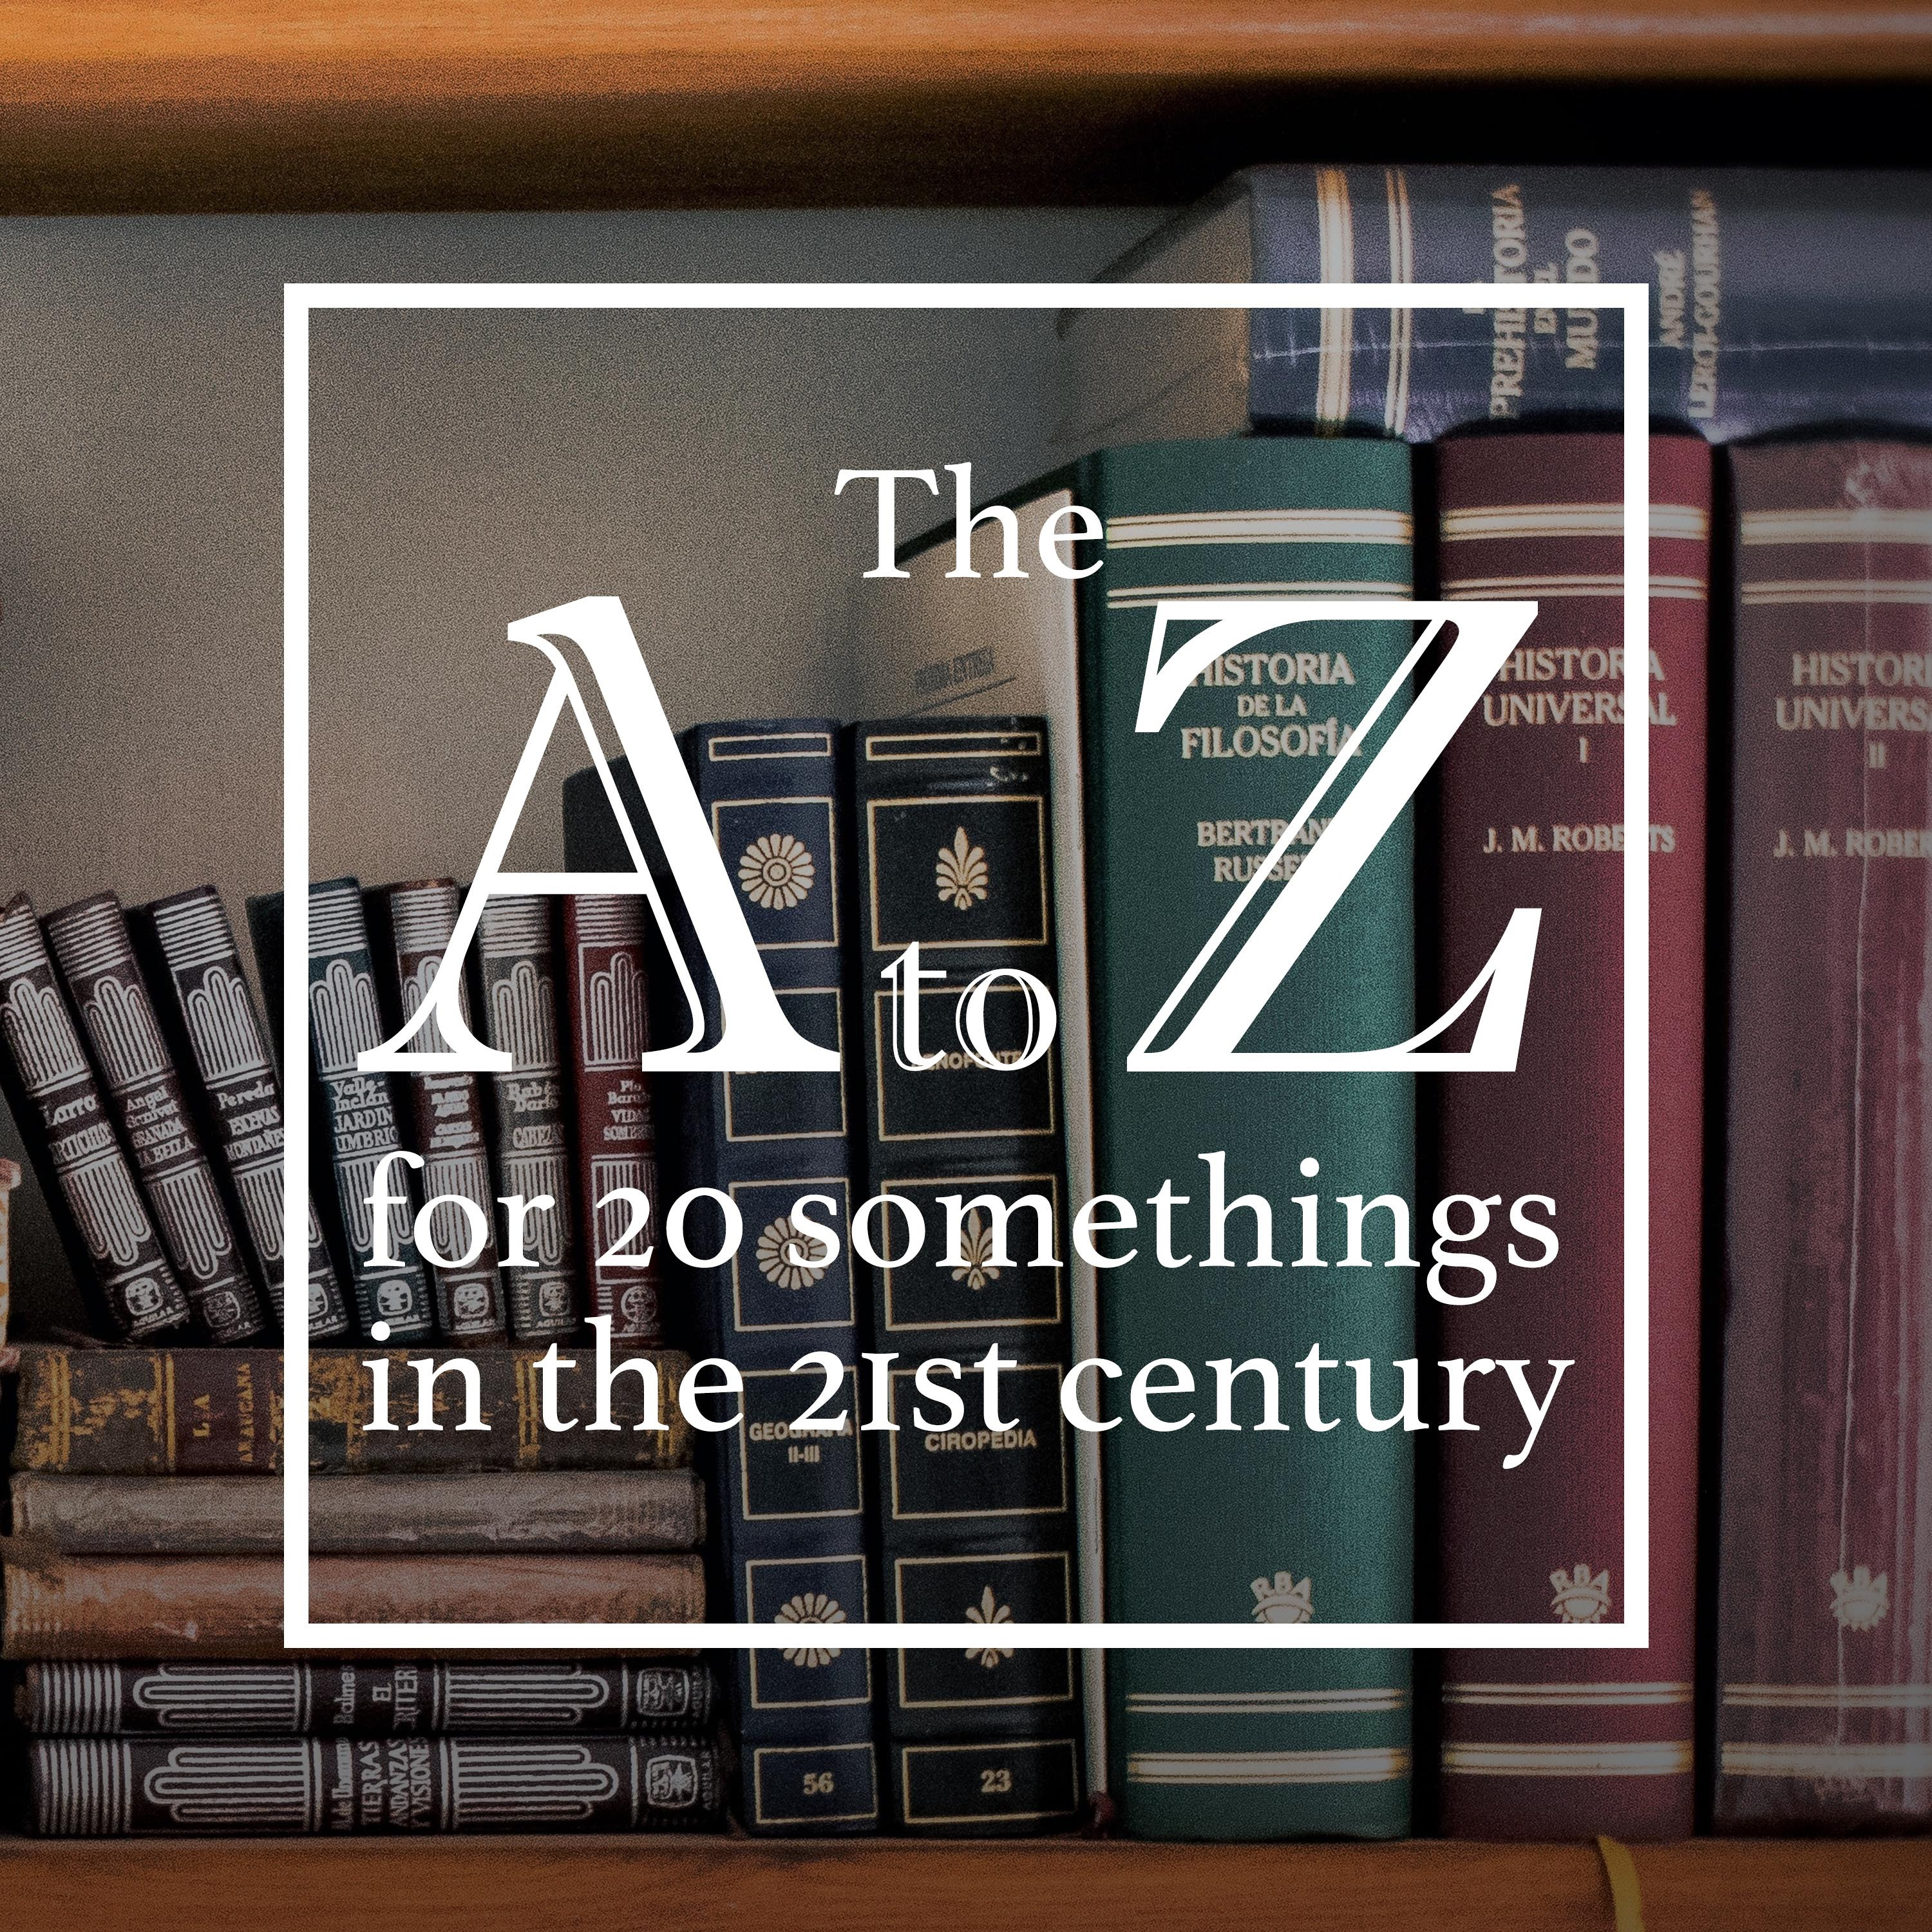 Episode 1: A Is For....